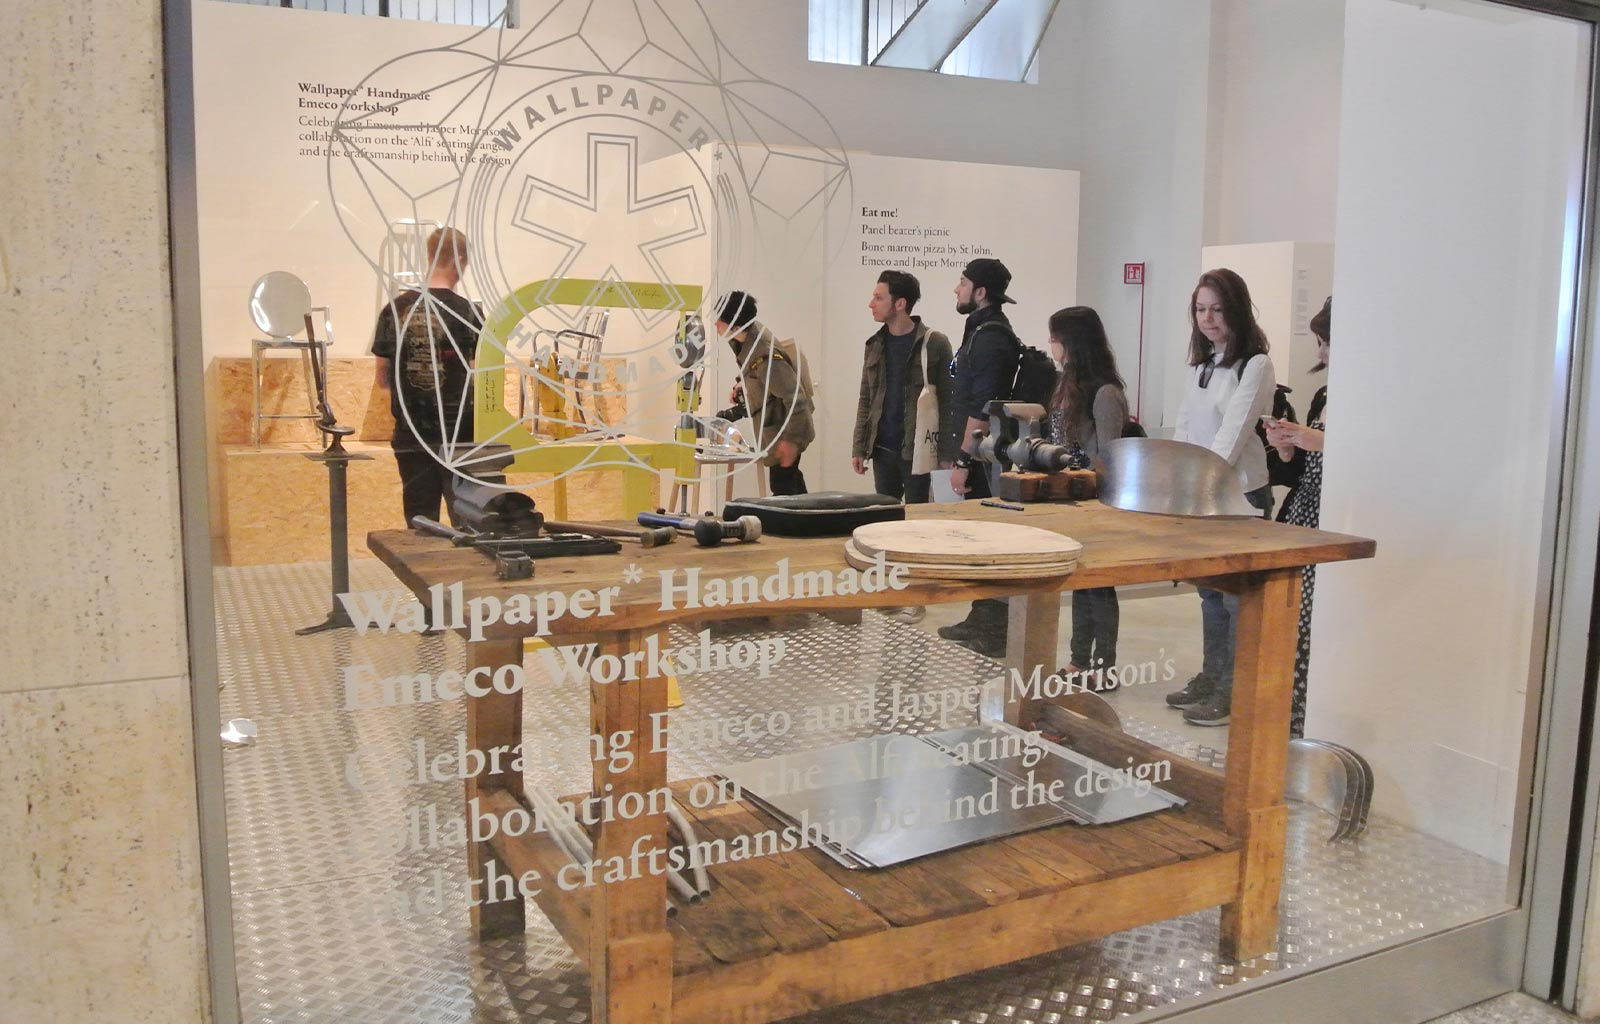 European and Product Design Labs 2015 at Wallpaper's Exhibition in Milan